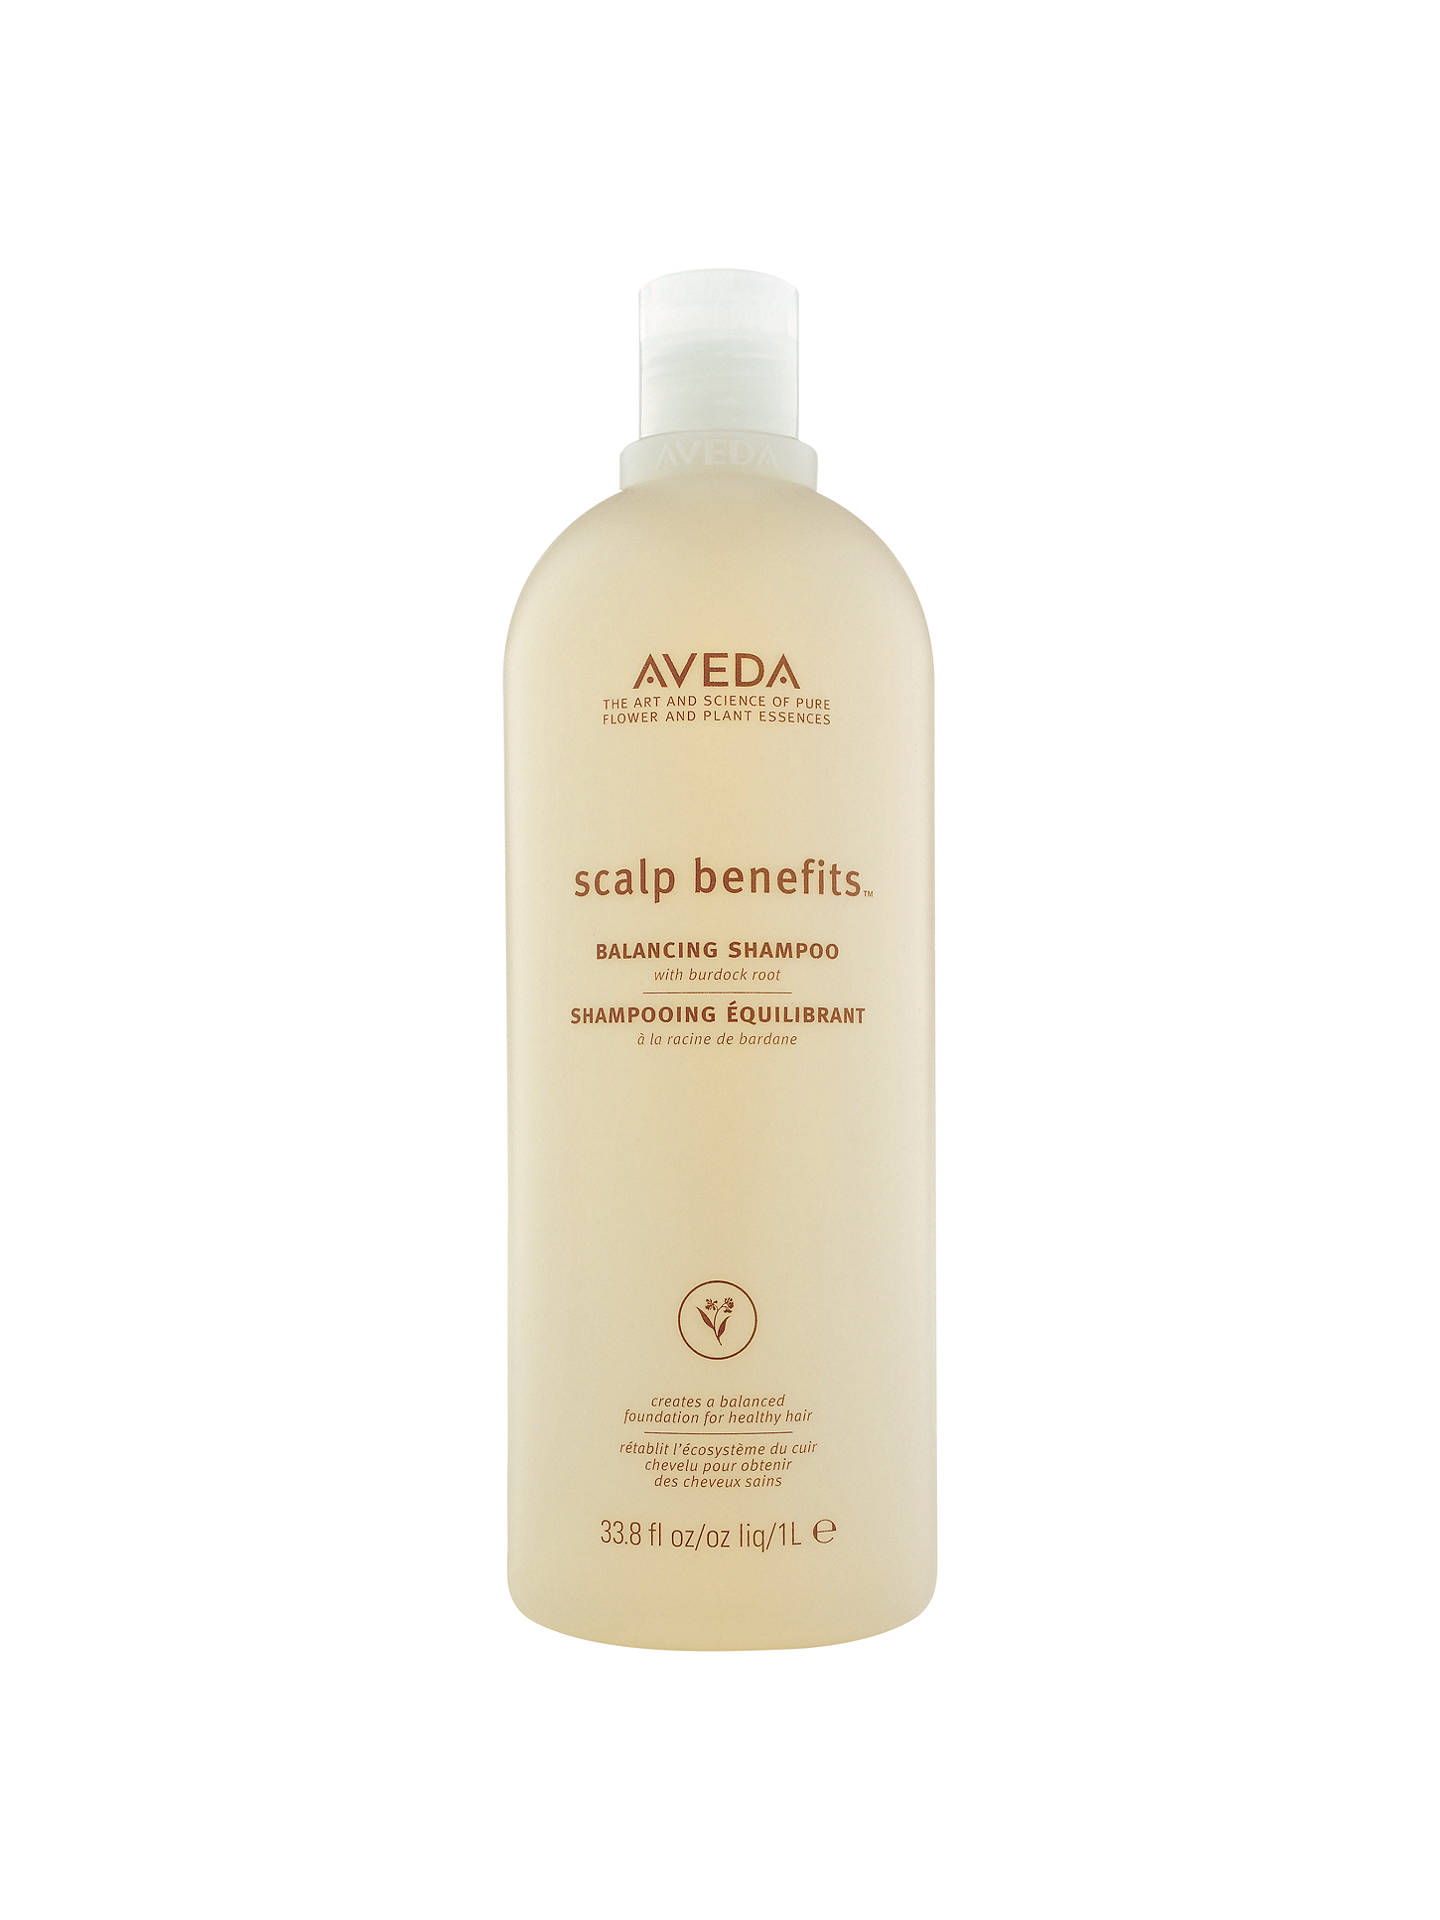 Aveda scalp benefits shampoo review